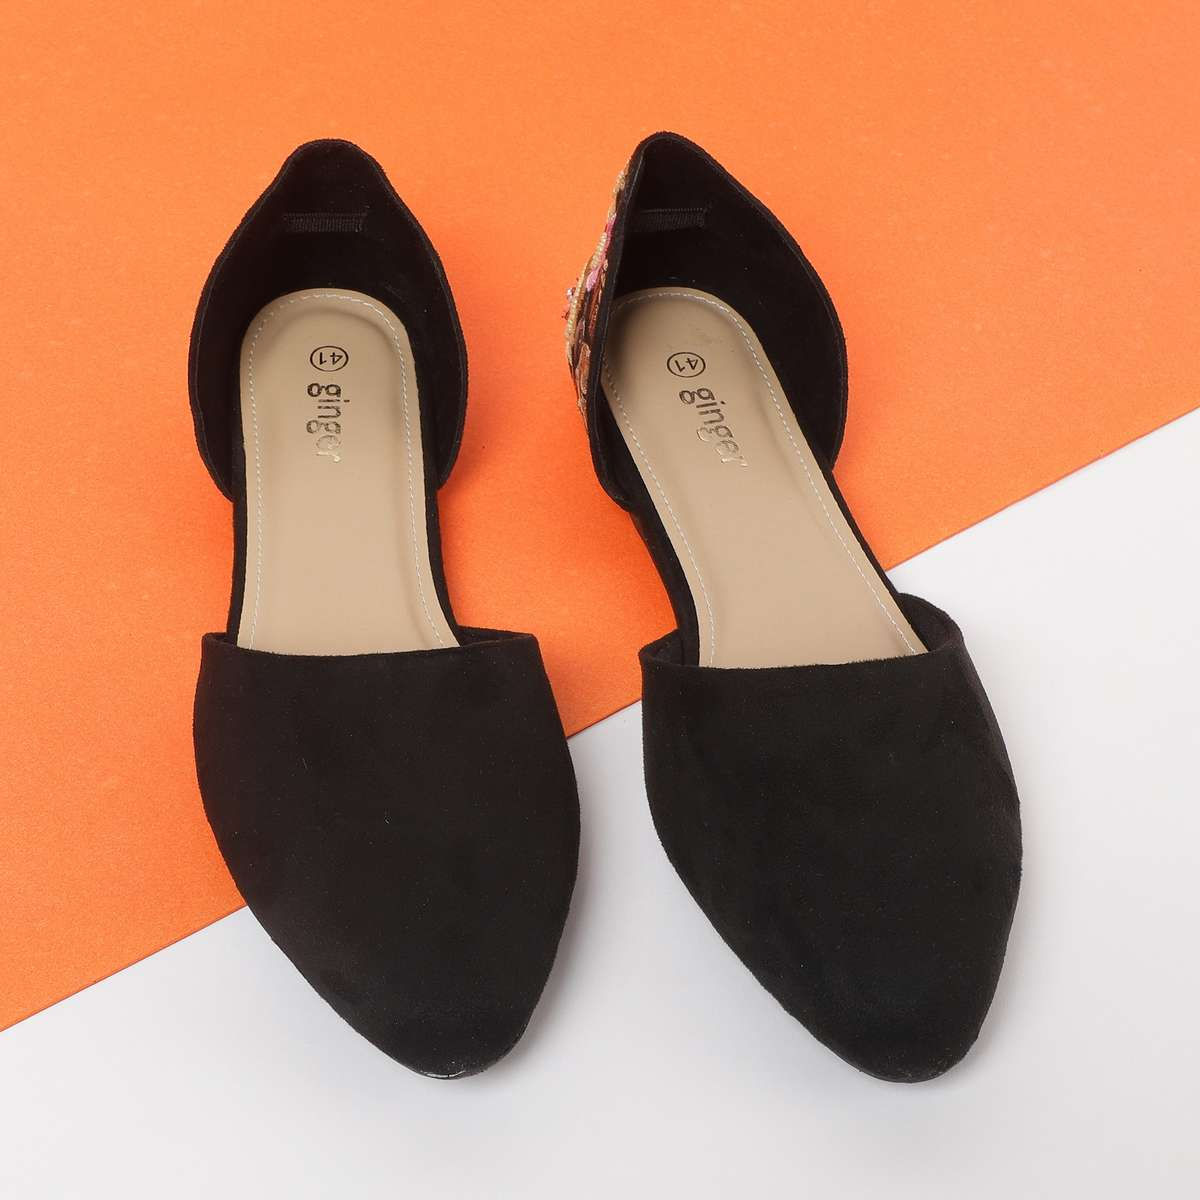 2.GINGER Women Embroidered D'Orsay Flats